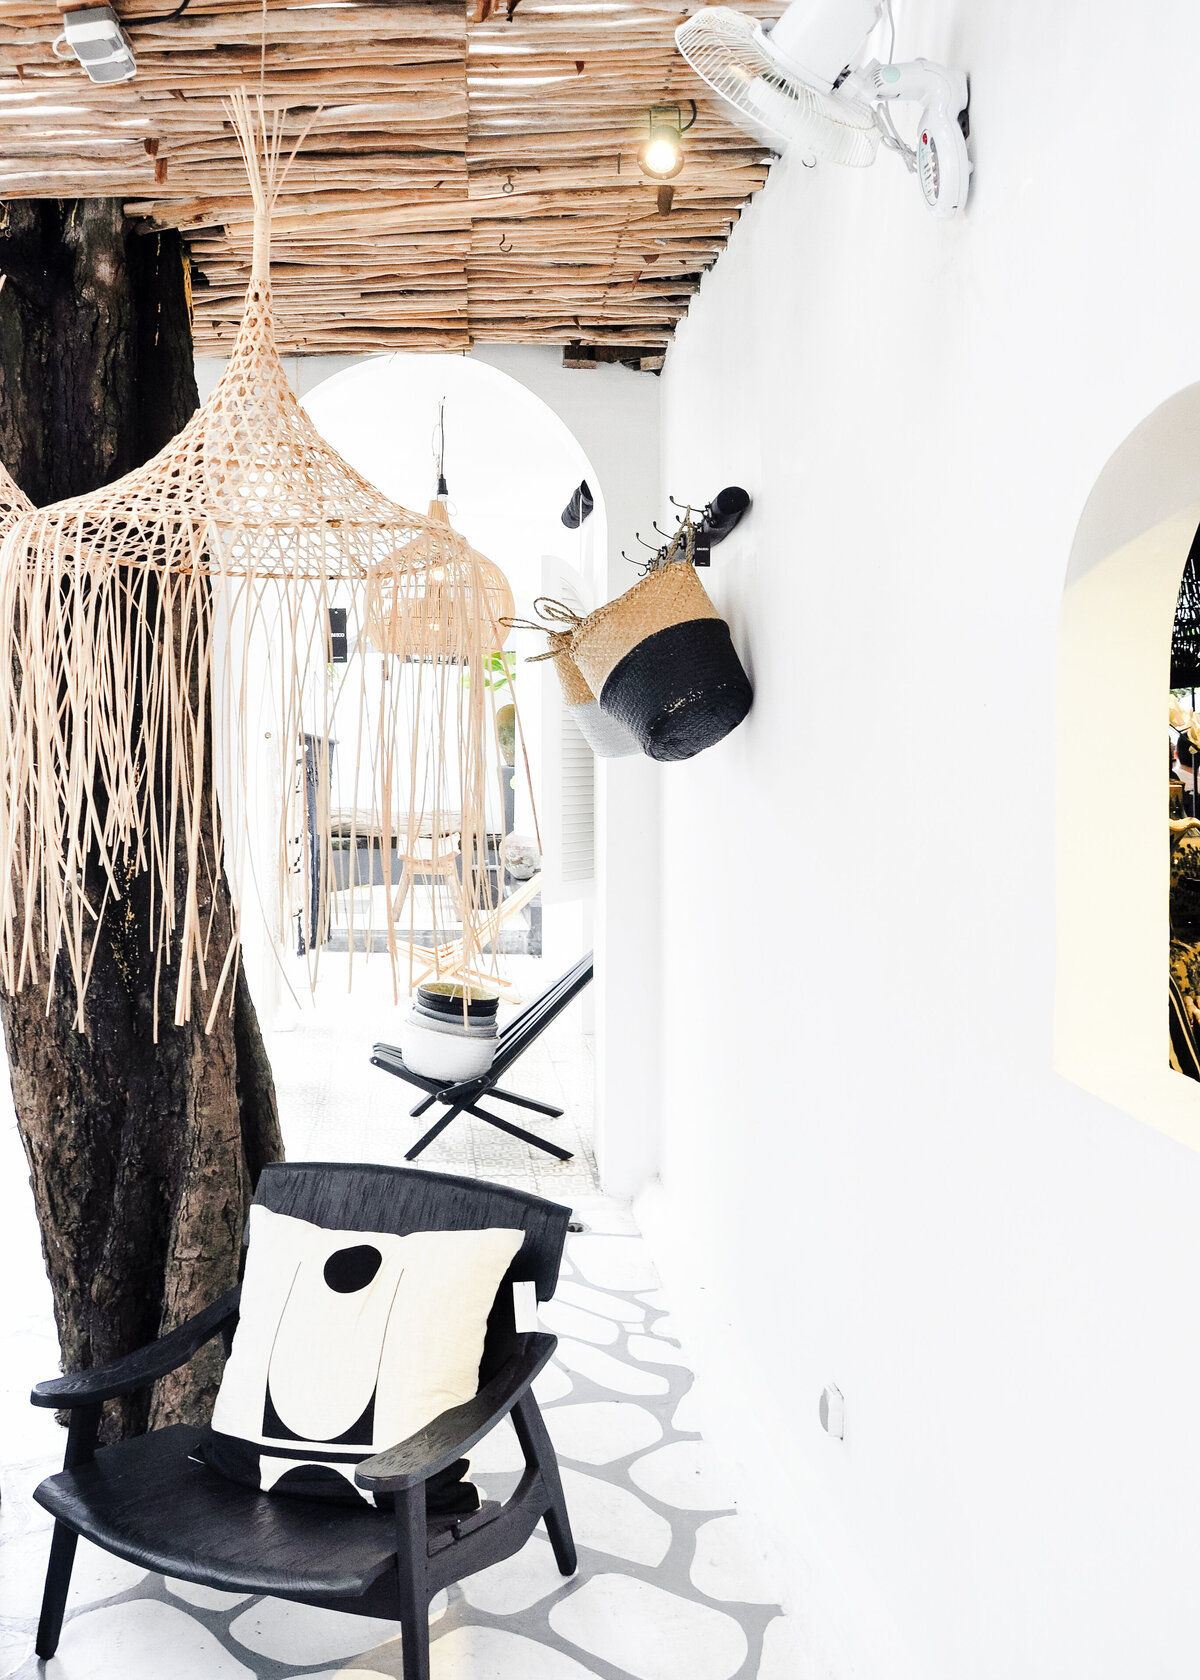 A white terrace in Spain is styled with a black deck chair, and wicker baskets with hanging raffia pendants.